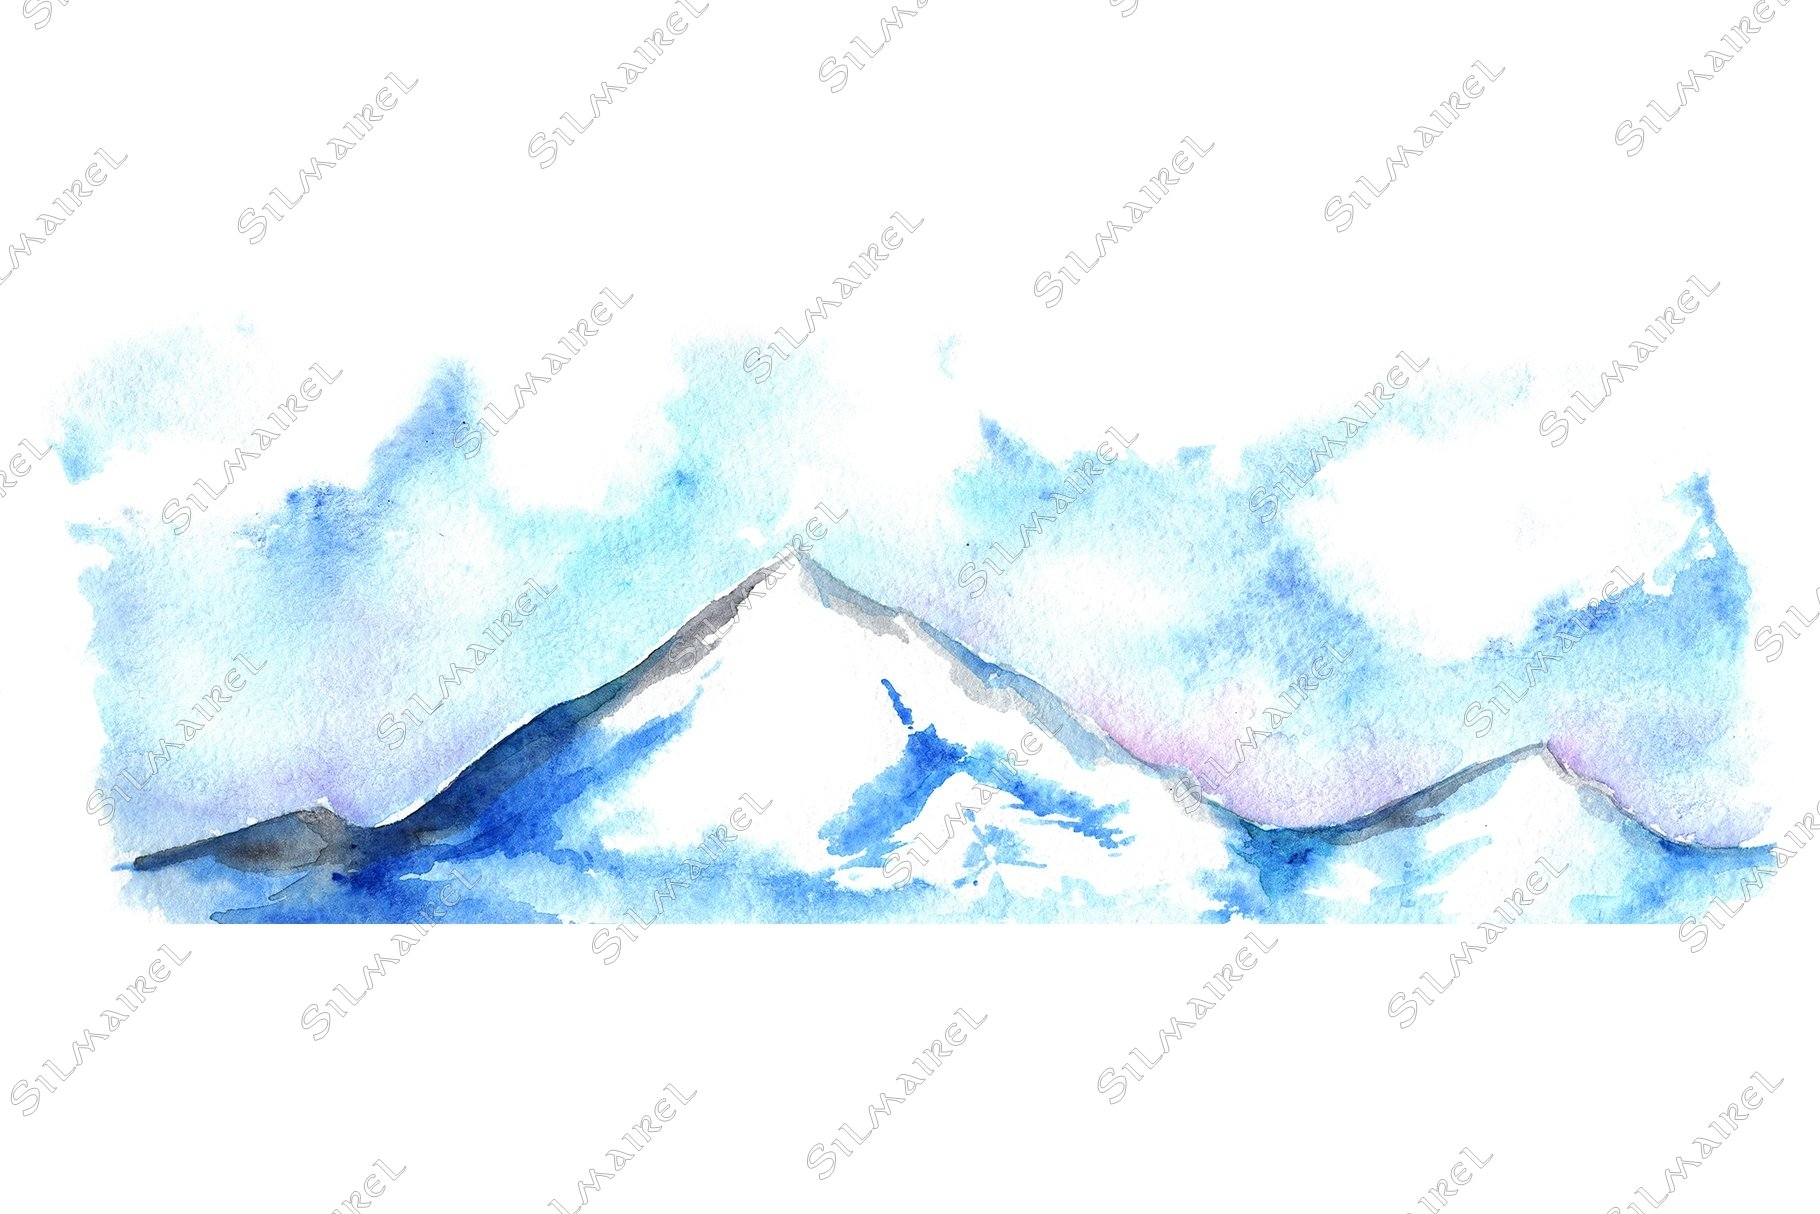 Watercolor North winter ice mountain landscape hand drawn example image 1